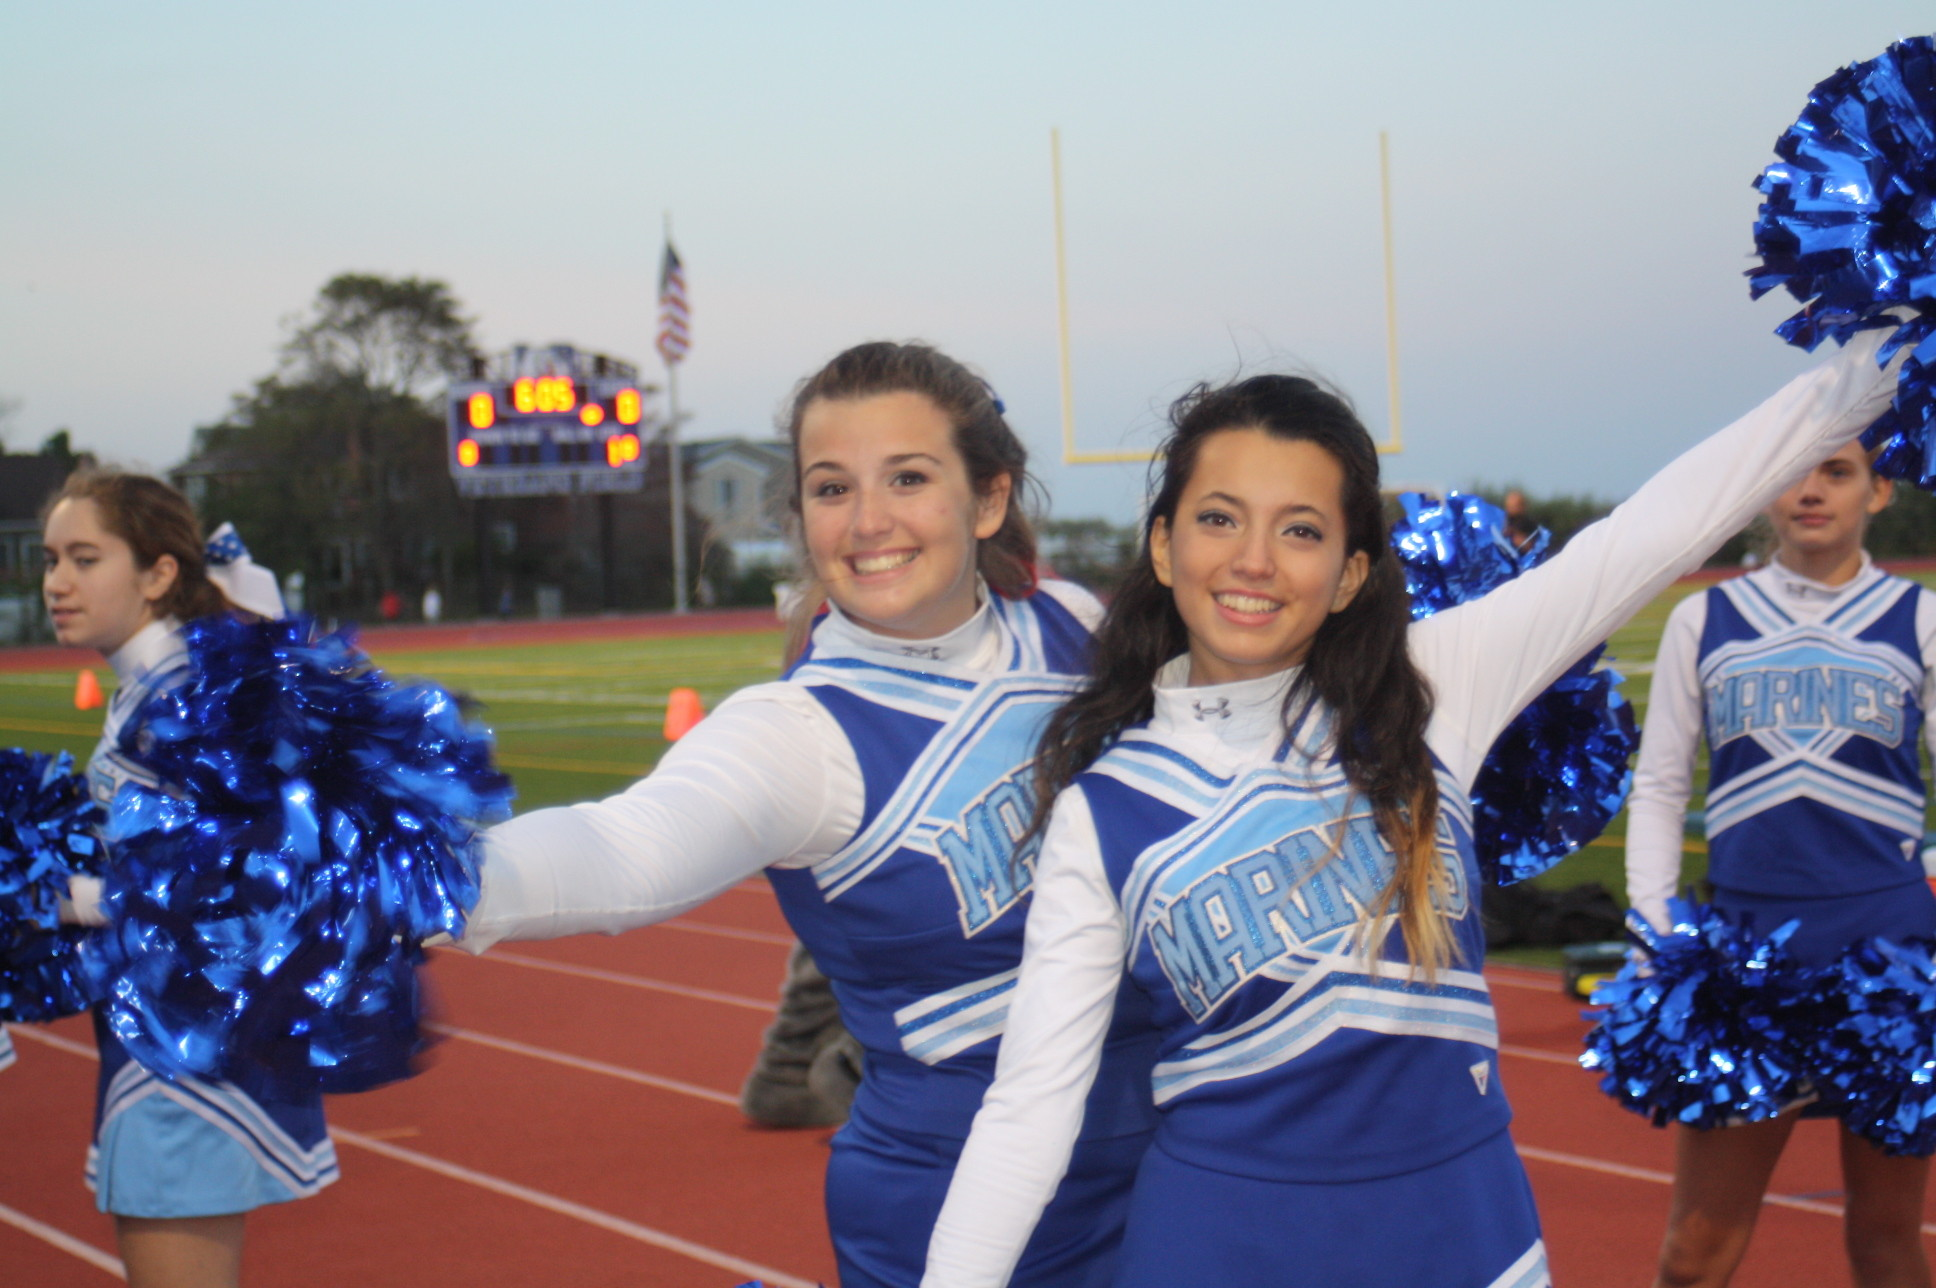 At the homecoming game, varsity cheerleaders Laura Capozzi, left, and Kristel Garces had plenty to cheer about, as the Marines earned their second win of the season.